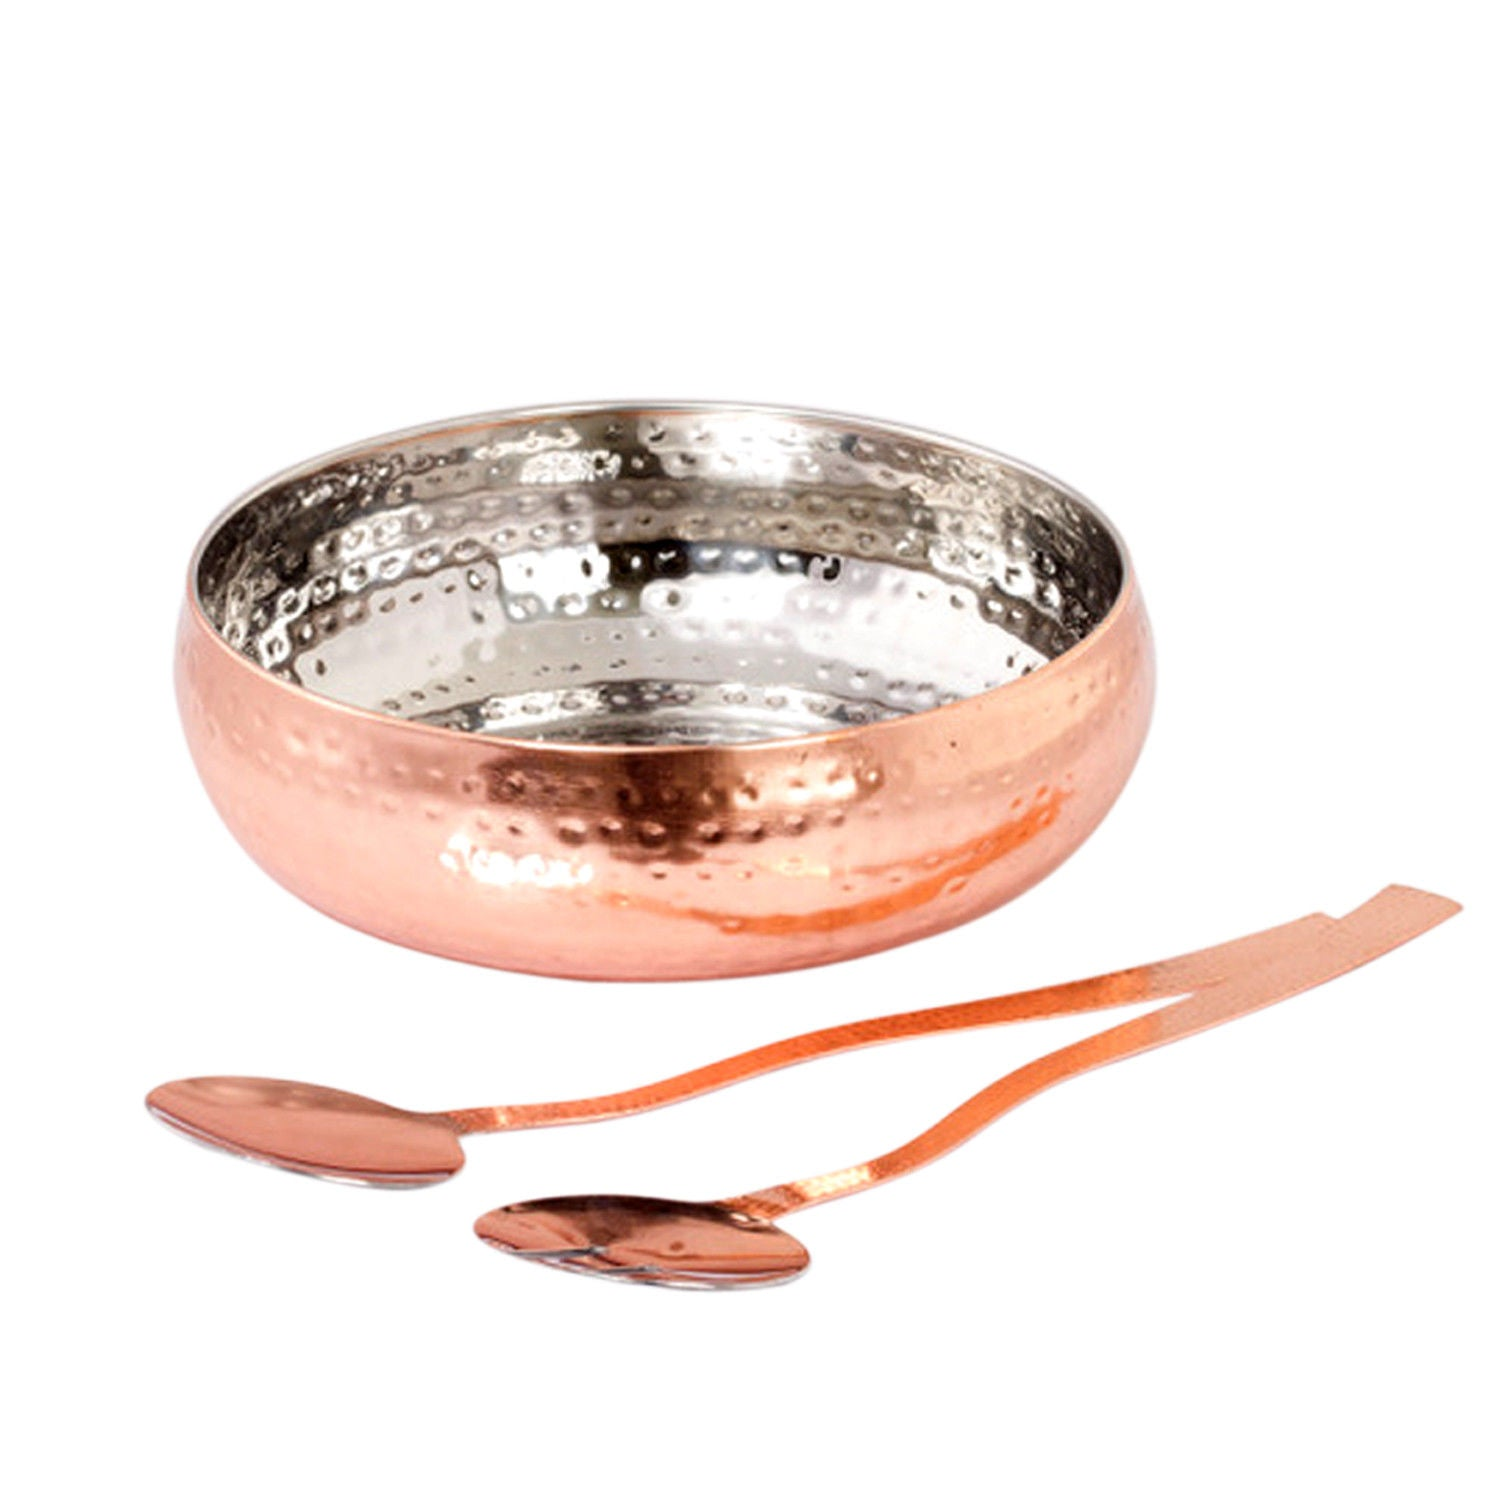 Copper Hammered Stainless Steel Salad Bowl With Serving Spoon Set